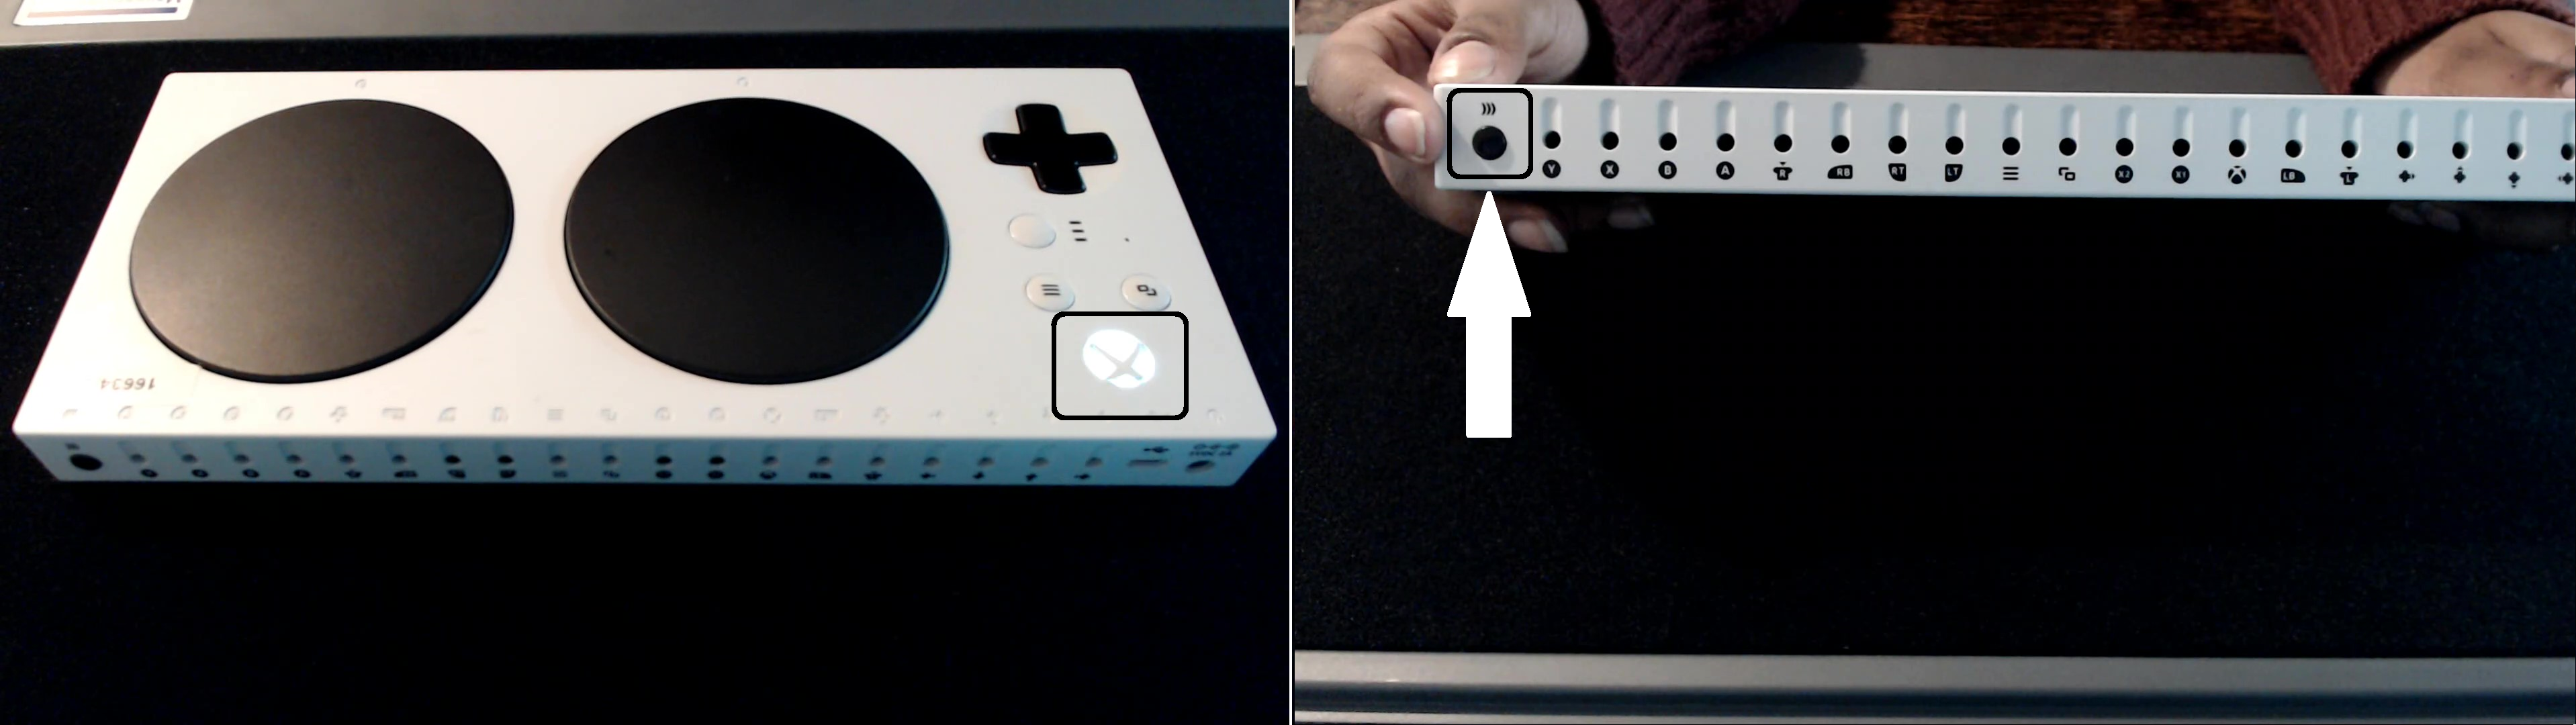 Photos showing where the sync button is on the XAC and which light will illuminate when pressed.